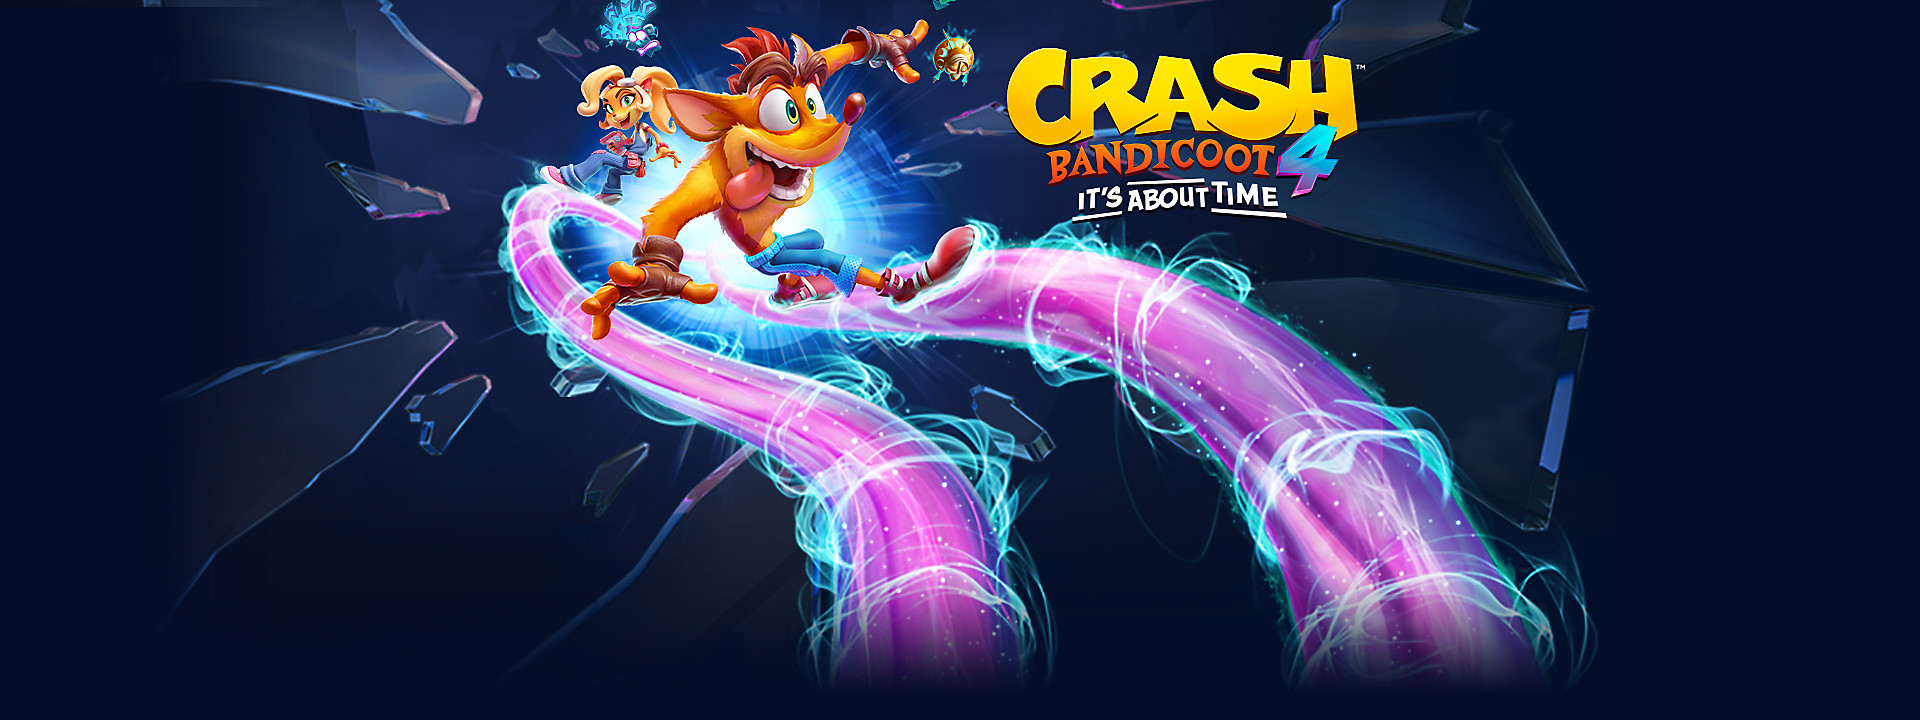 Crash Bandicoot 4: It's About Time - Demo Now Available with Pre-Order